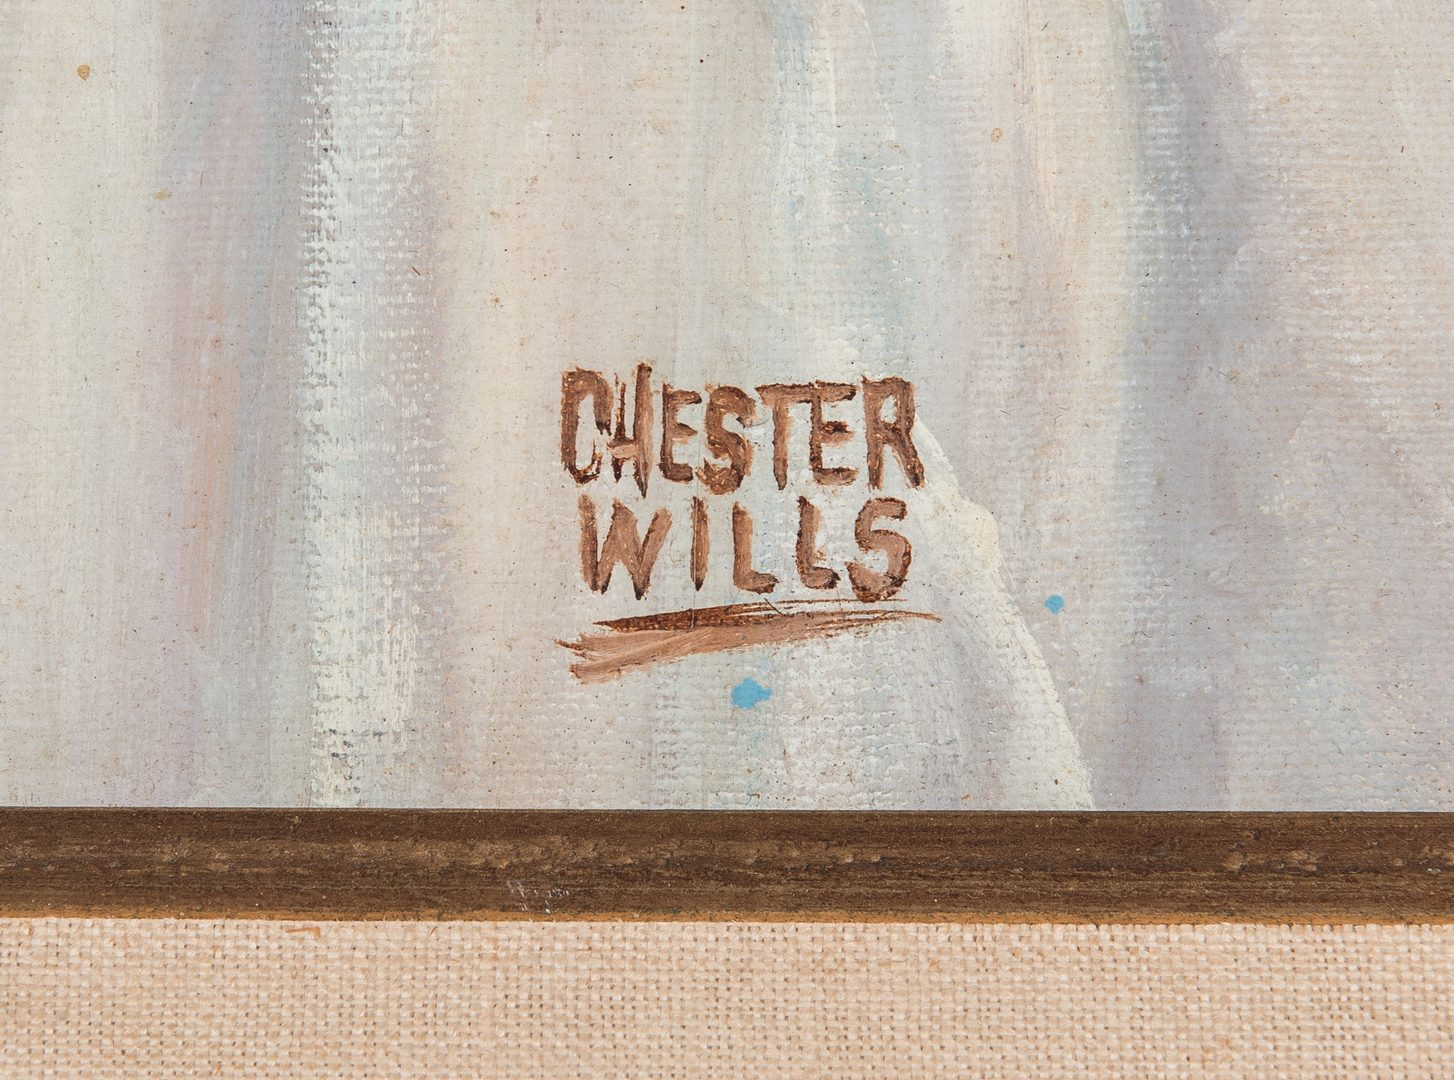 Lot 270: Chester Wills Portrait of a Native American Woman